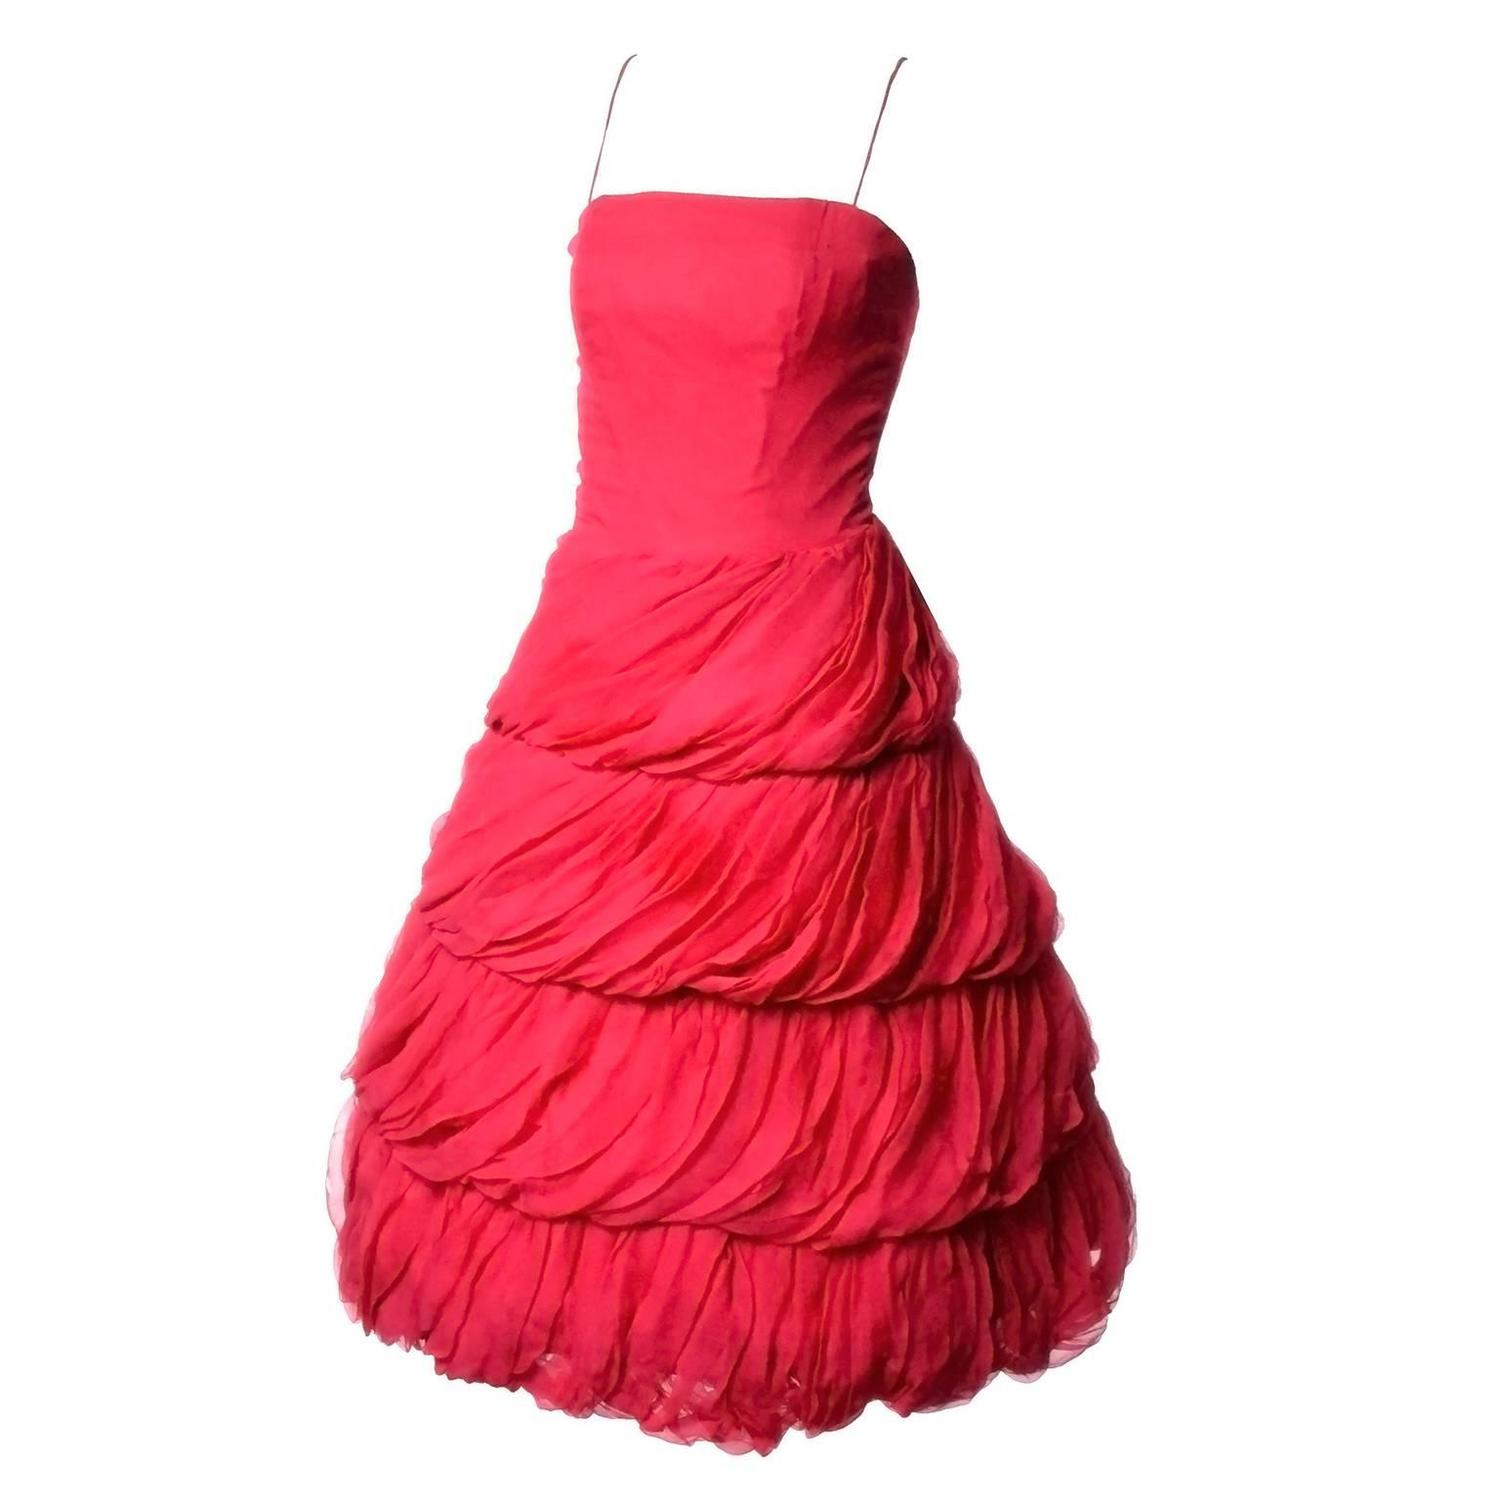 Vintage Frank Usher Evening Dresses and Gowns - 19 For Sale at 1stdibs